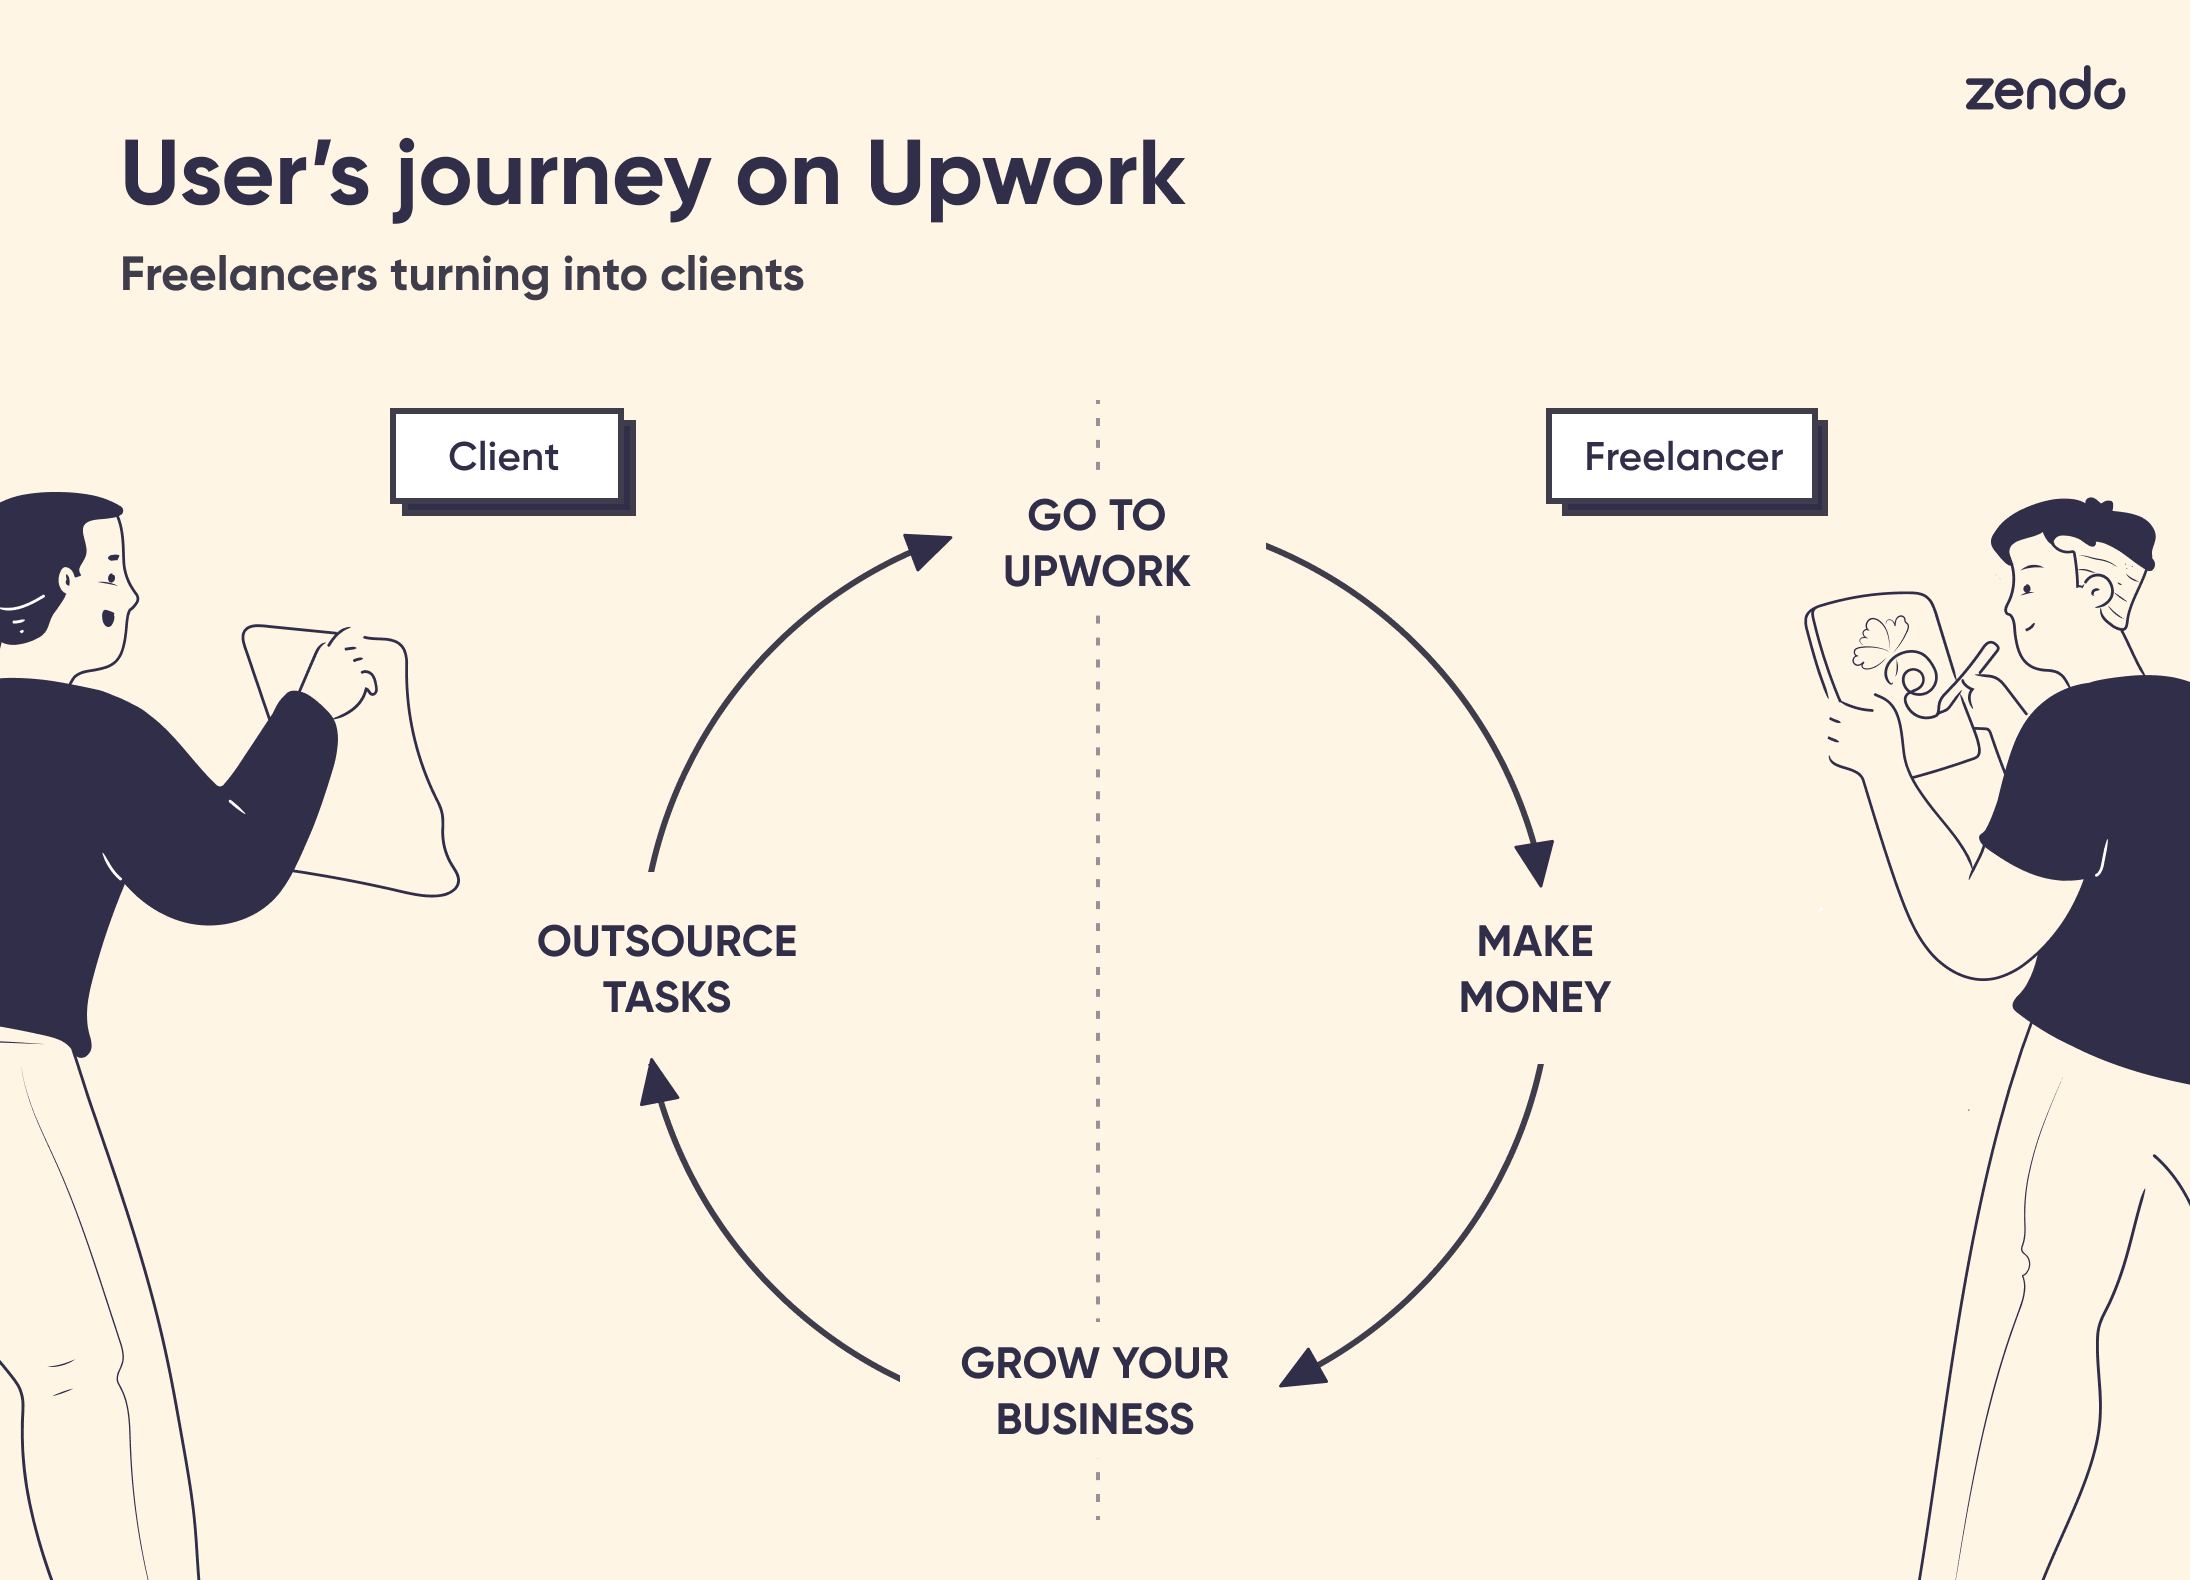 Infographic showing the user's journey on Upwork: from freelancer to client.